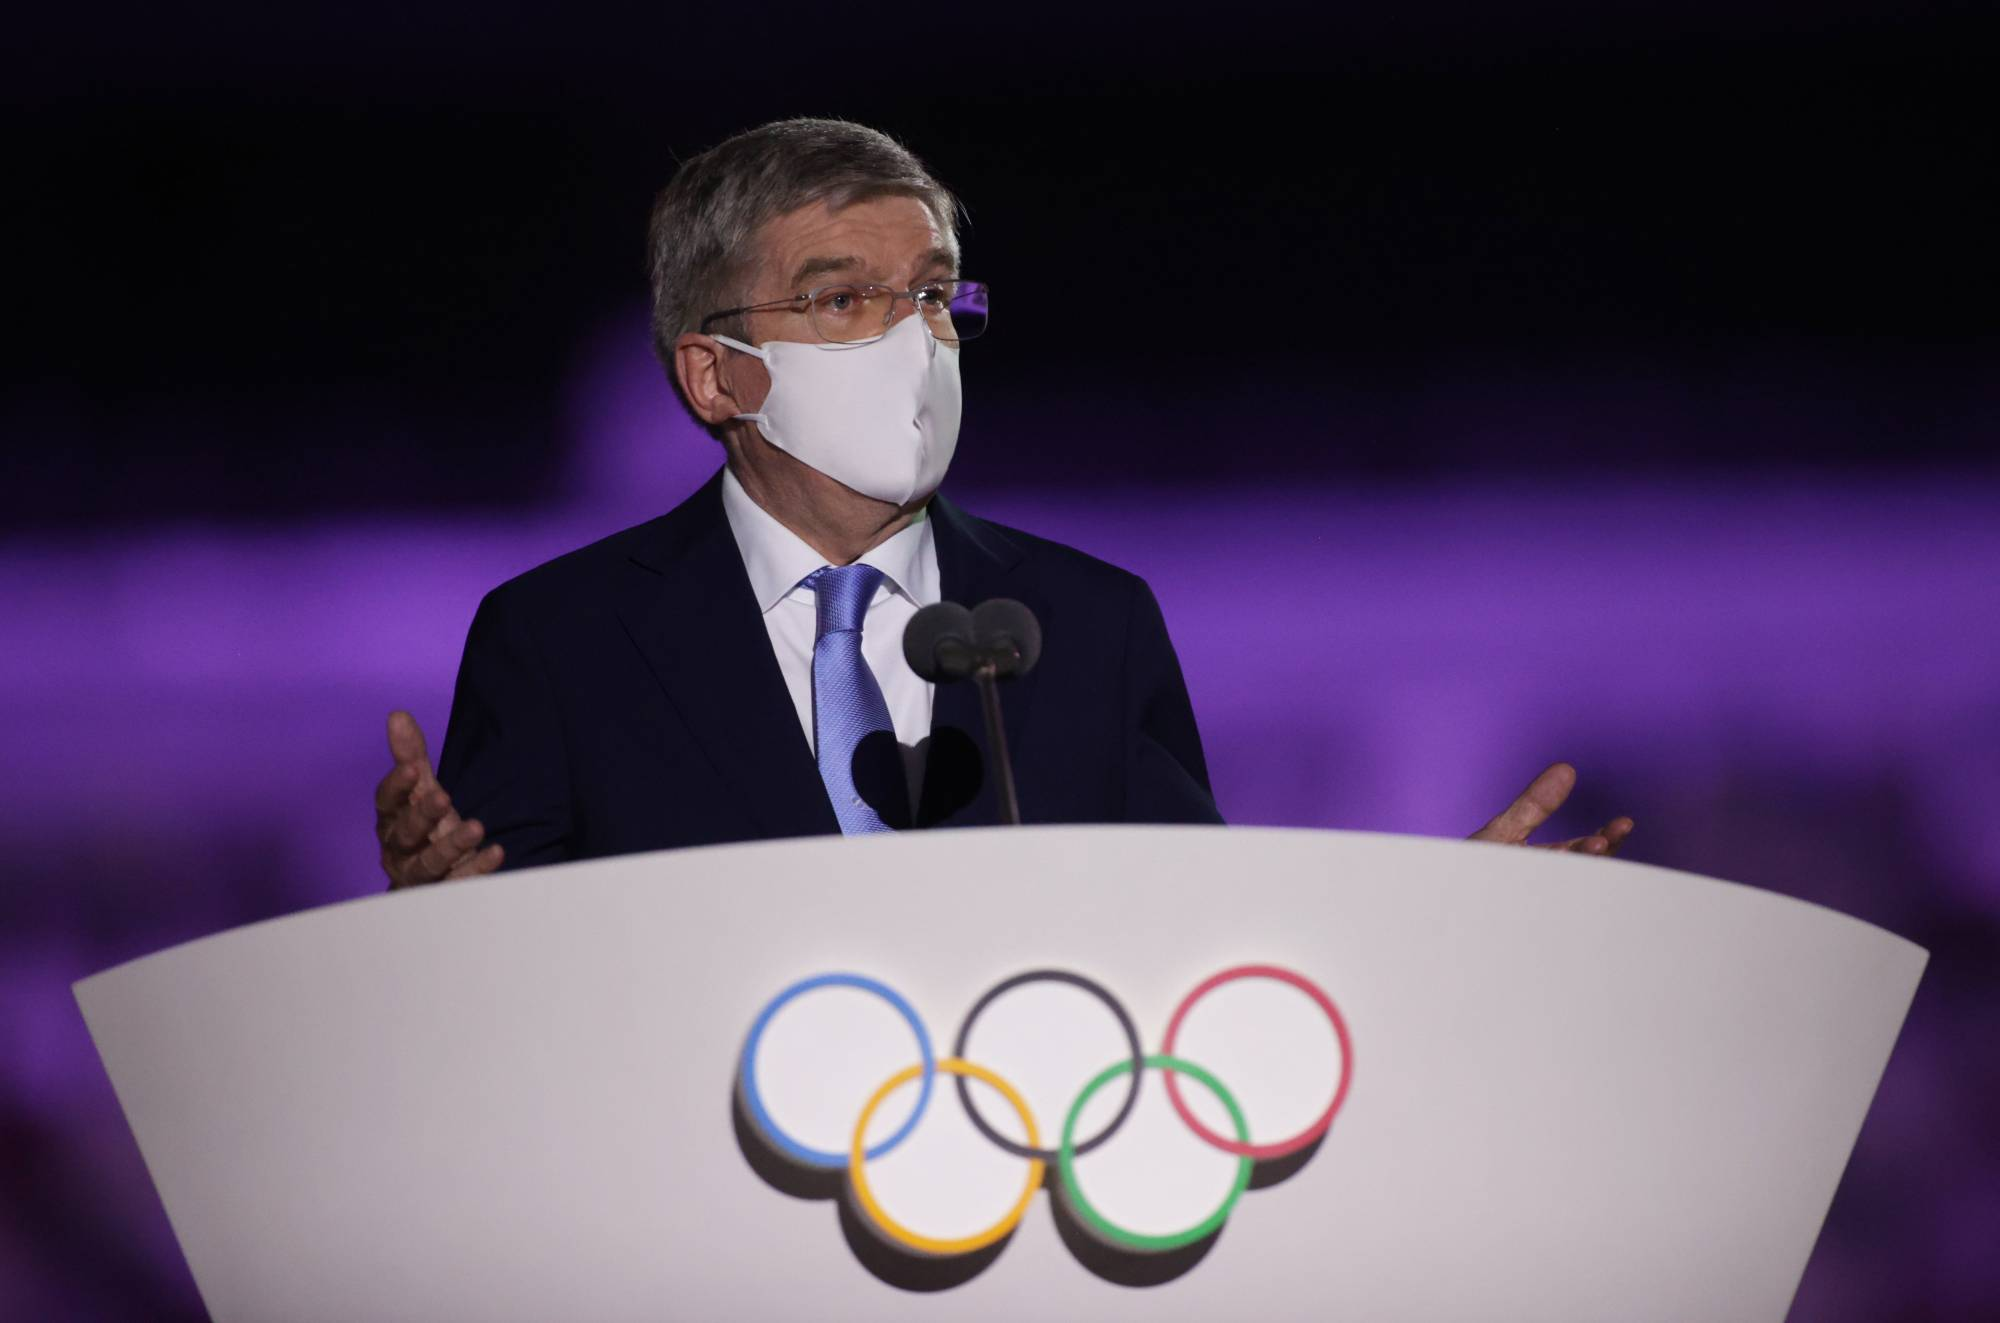 International Olympic Committee head Thomas Bach delivers a speech at the 2020 Tokyo Olympics opening ceremony at the National Stadium on Friday.  | REUTERS